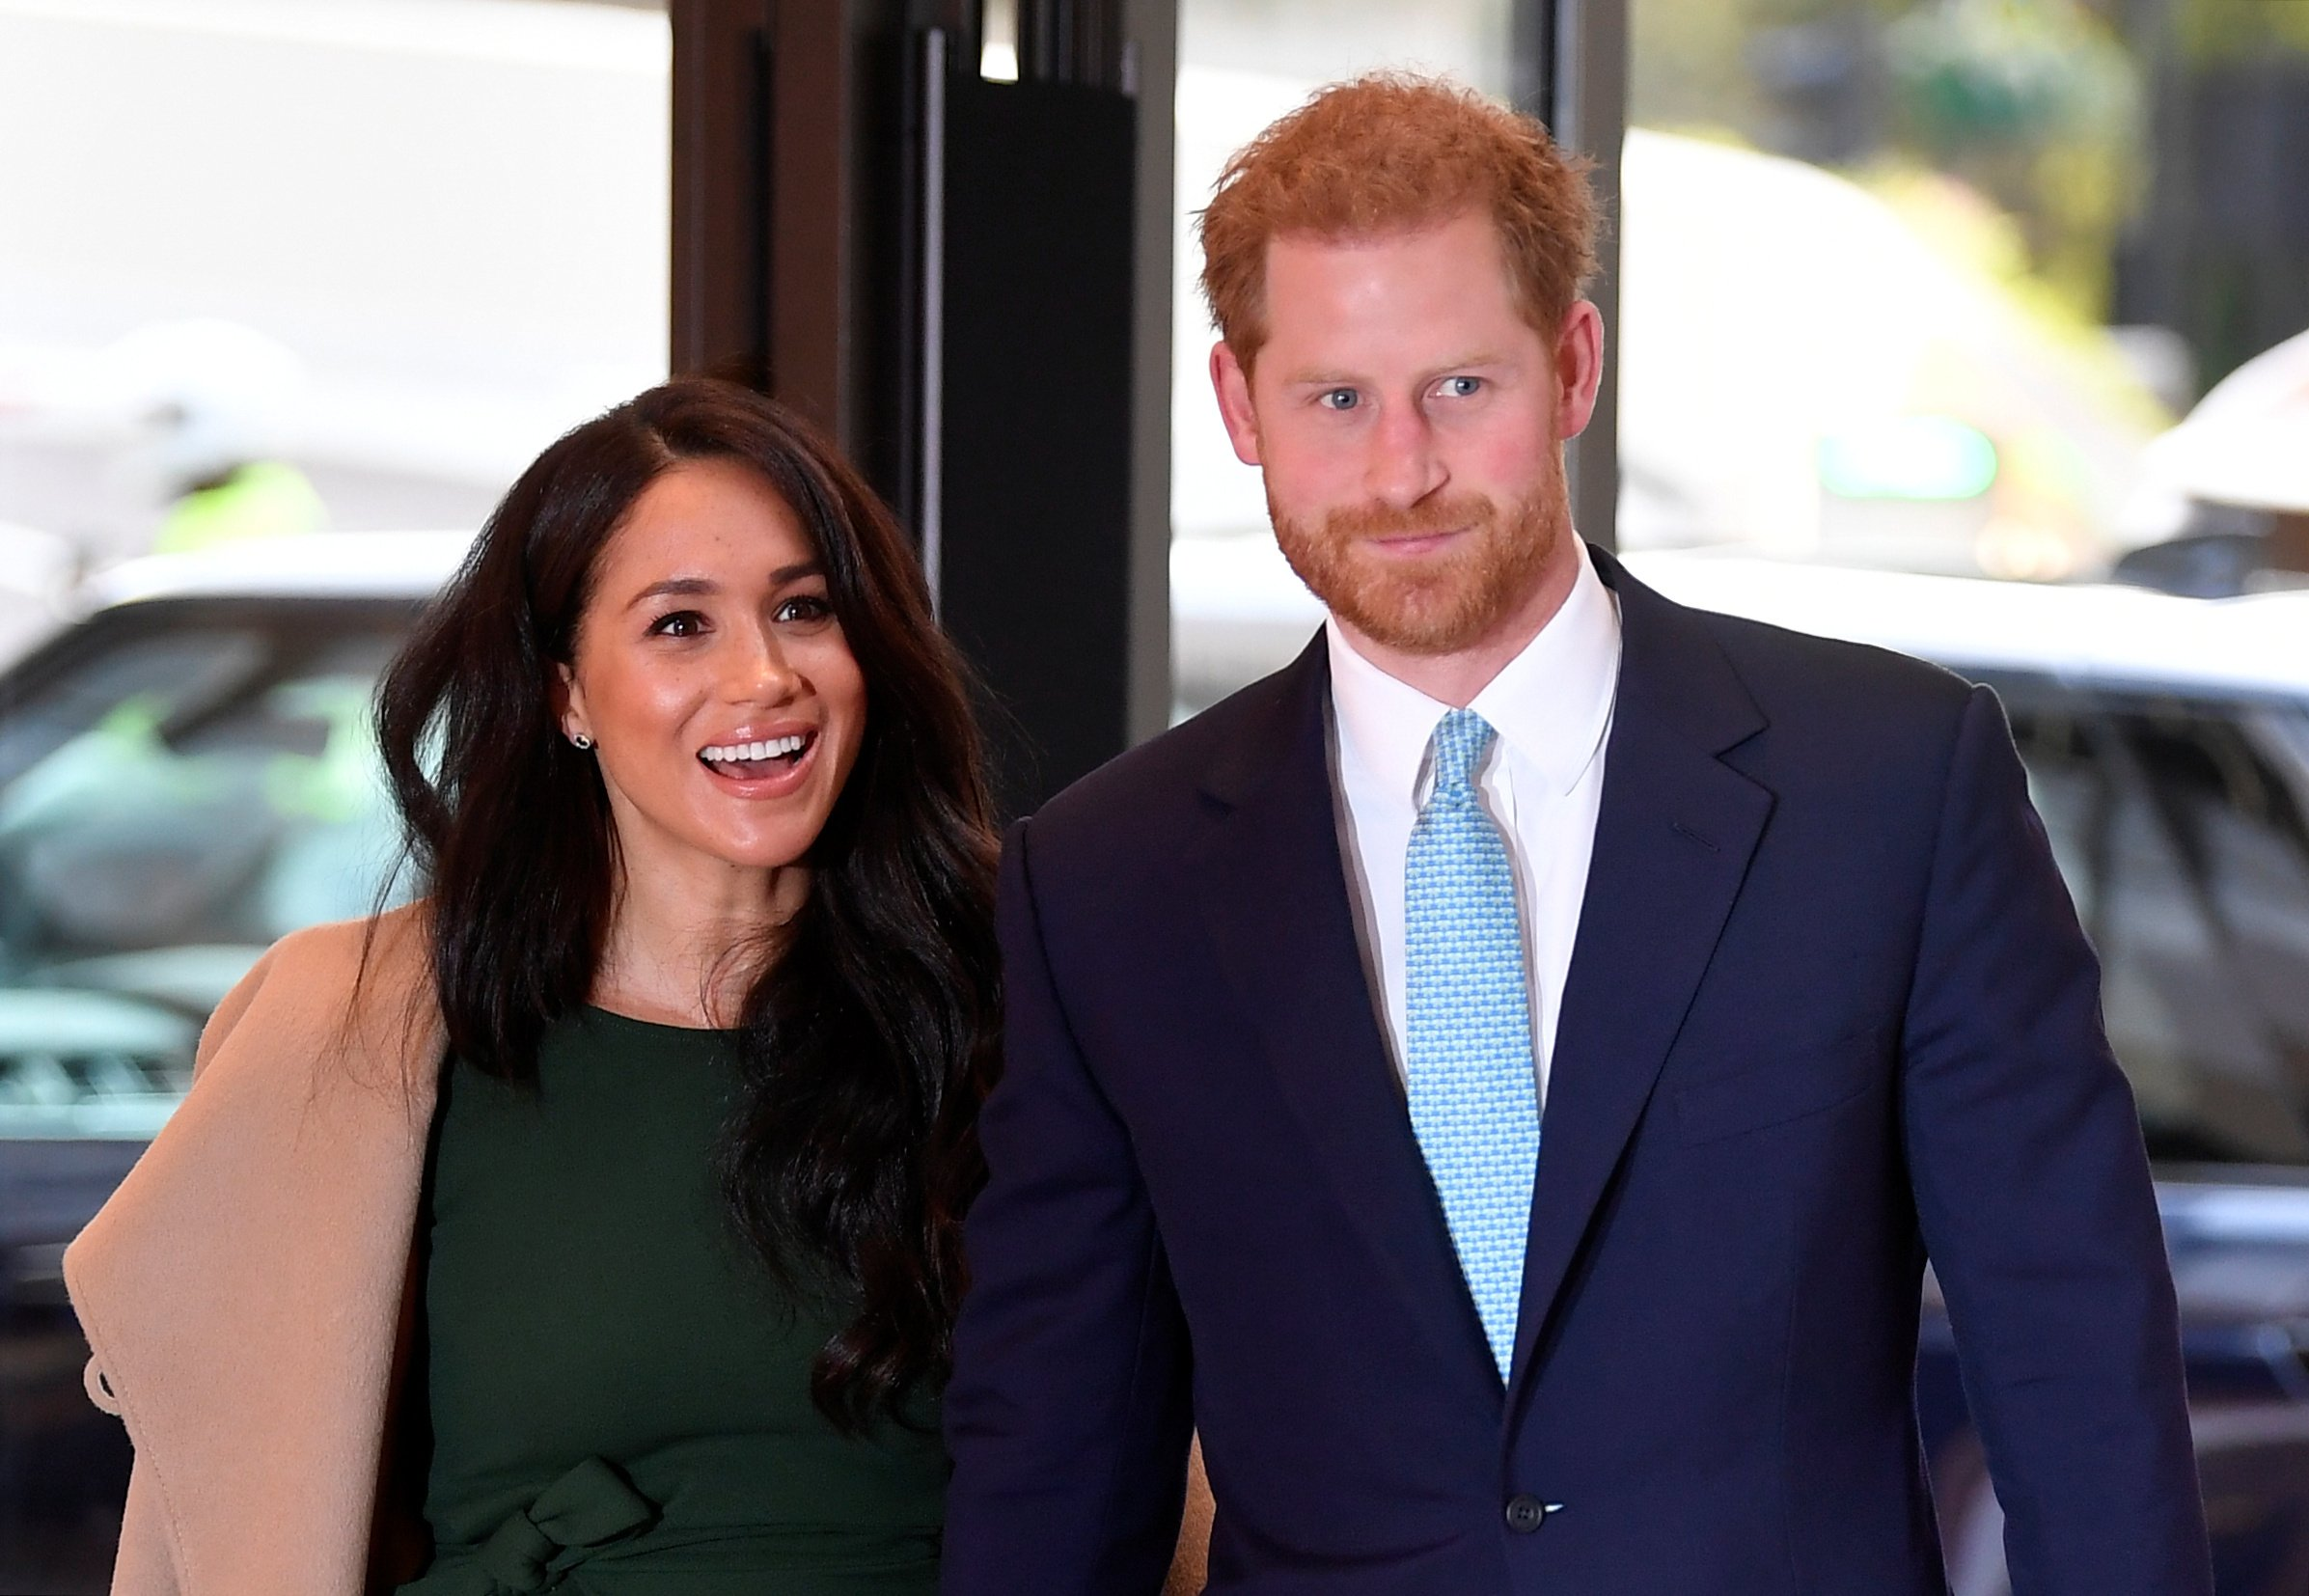 Meghan Markle et le prince Harry assistent aux WellChild Awards à Londres, Angleterre, le 15 octobre 2019 | Photo: Getty Images